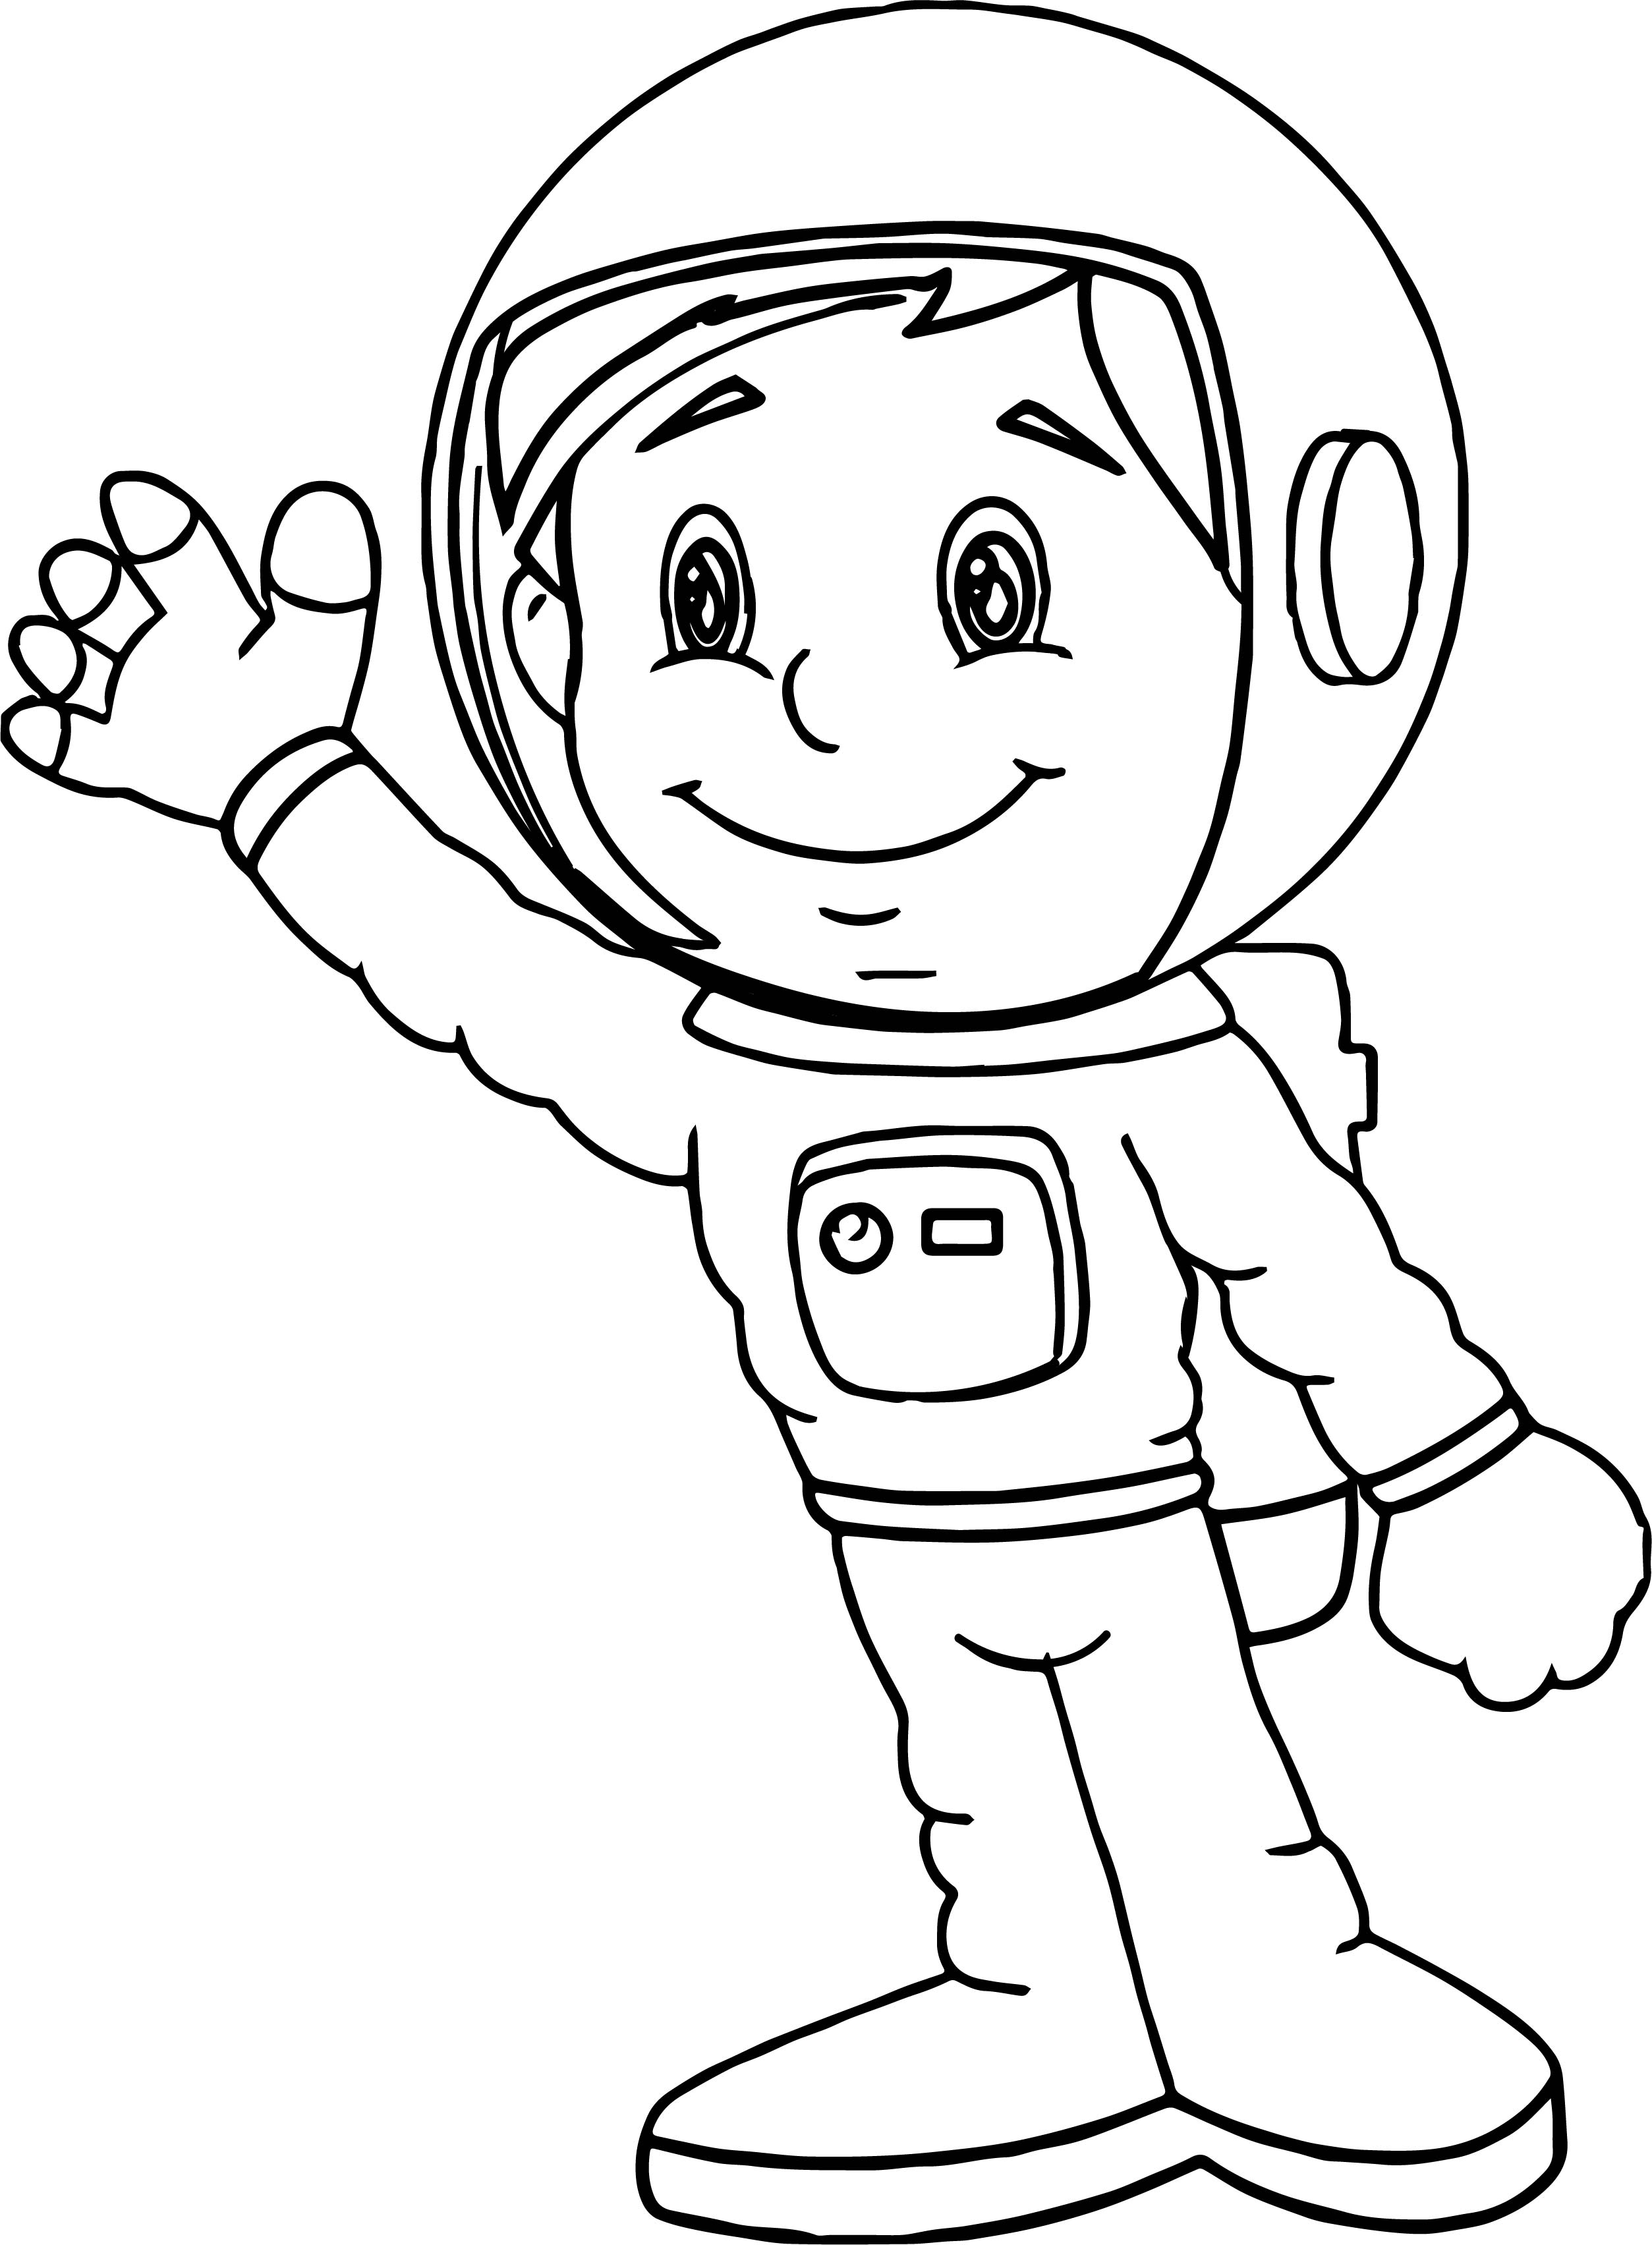 coloring picture of astronaut astronaut colouring pages realistic coloring pages picture astronaut of coloring